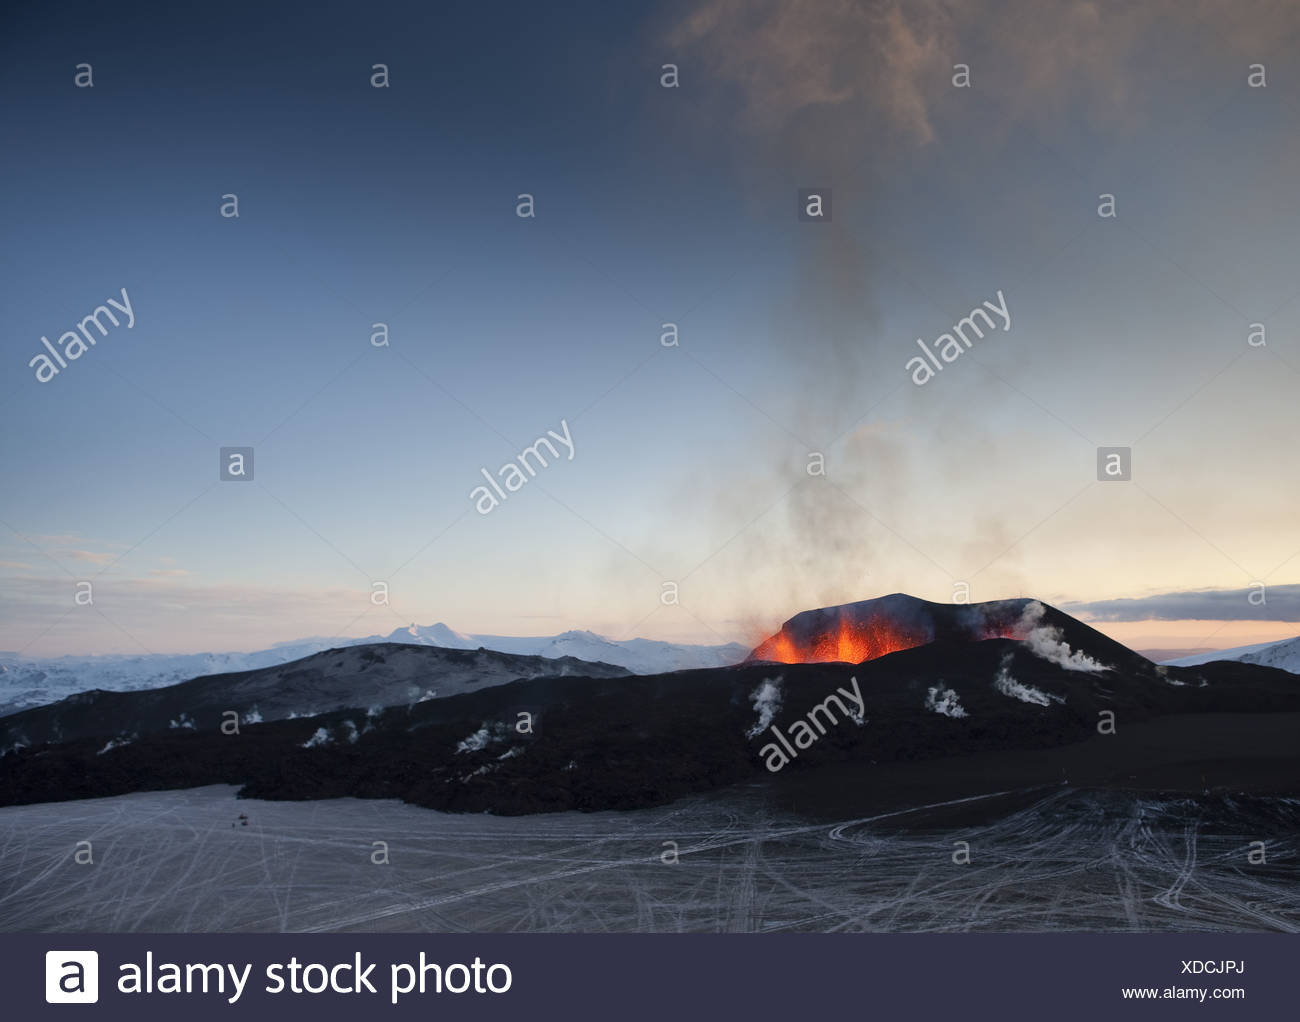 Fire and Ice-volcano eruption in Iceland at Fimmvorduhals, a ridge between Eyjafjallajokull glacier and Myrdalsjokull Glacier. - Stock Image